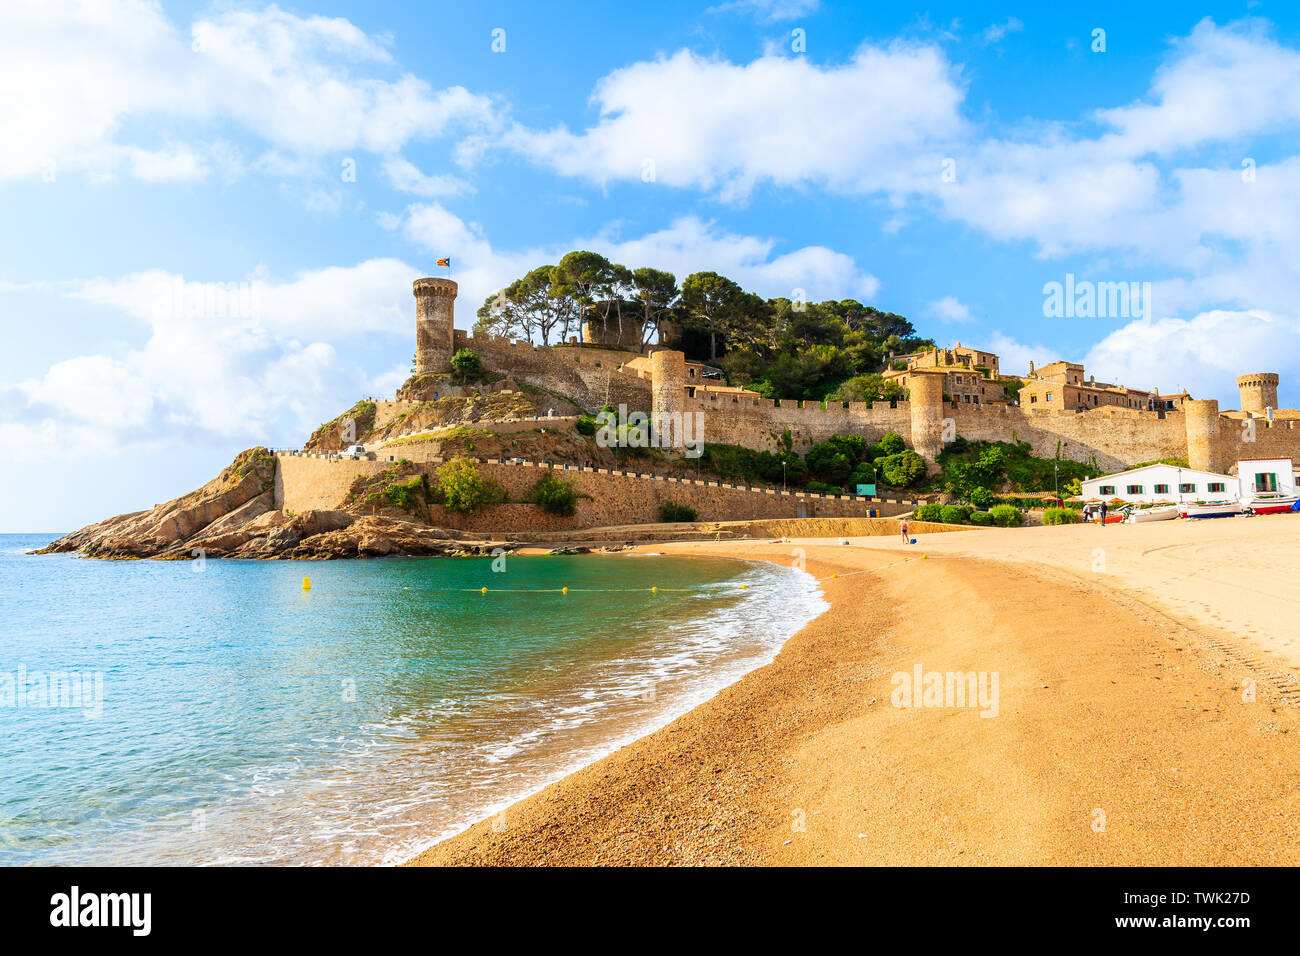 Golden sand beach in bay with castle in Tossa de Mar, Costa Brava, Spain Stock Photo